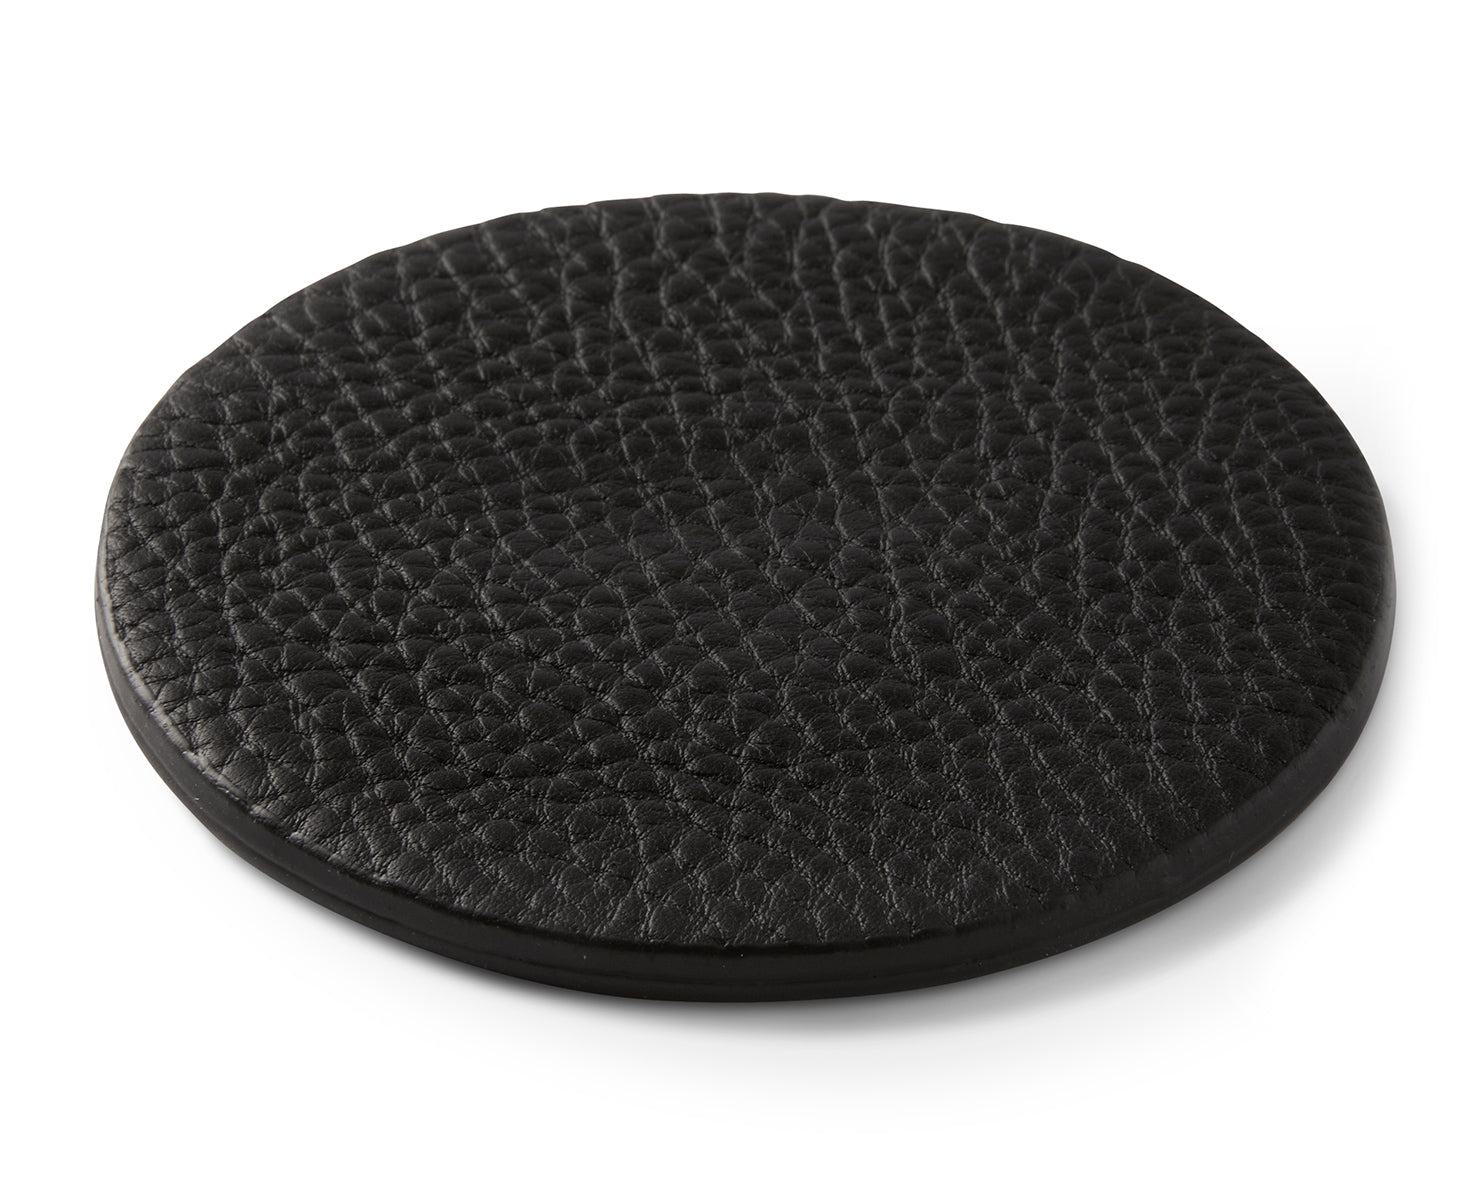 COASTER SET | KILLSPENCER® - Black Leather